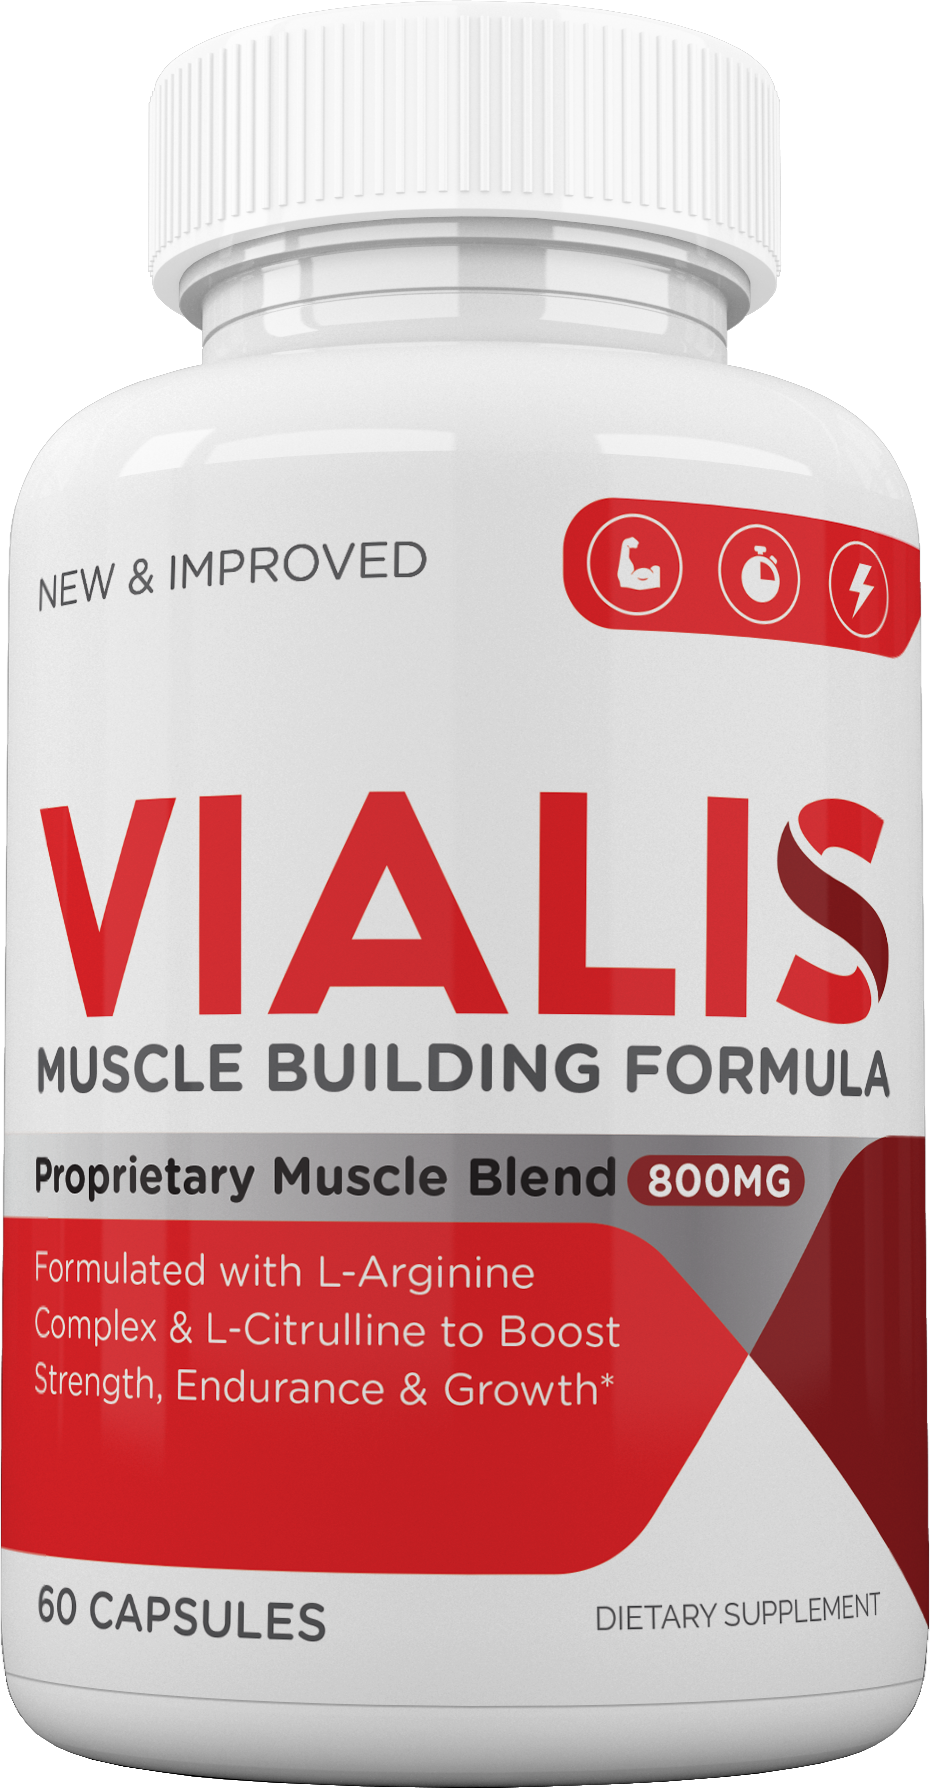 NEW Vialis Testosterone Booster 60 Capsules - FREE SHIPPING eBay